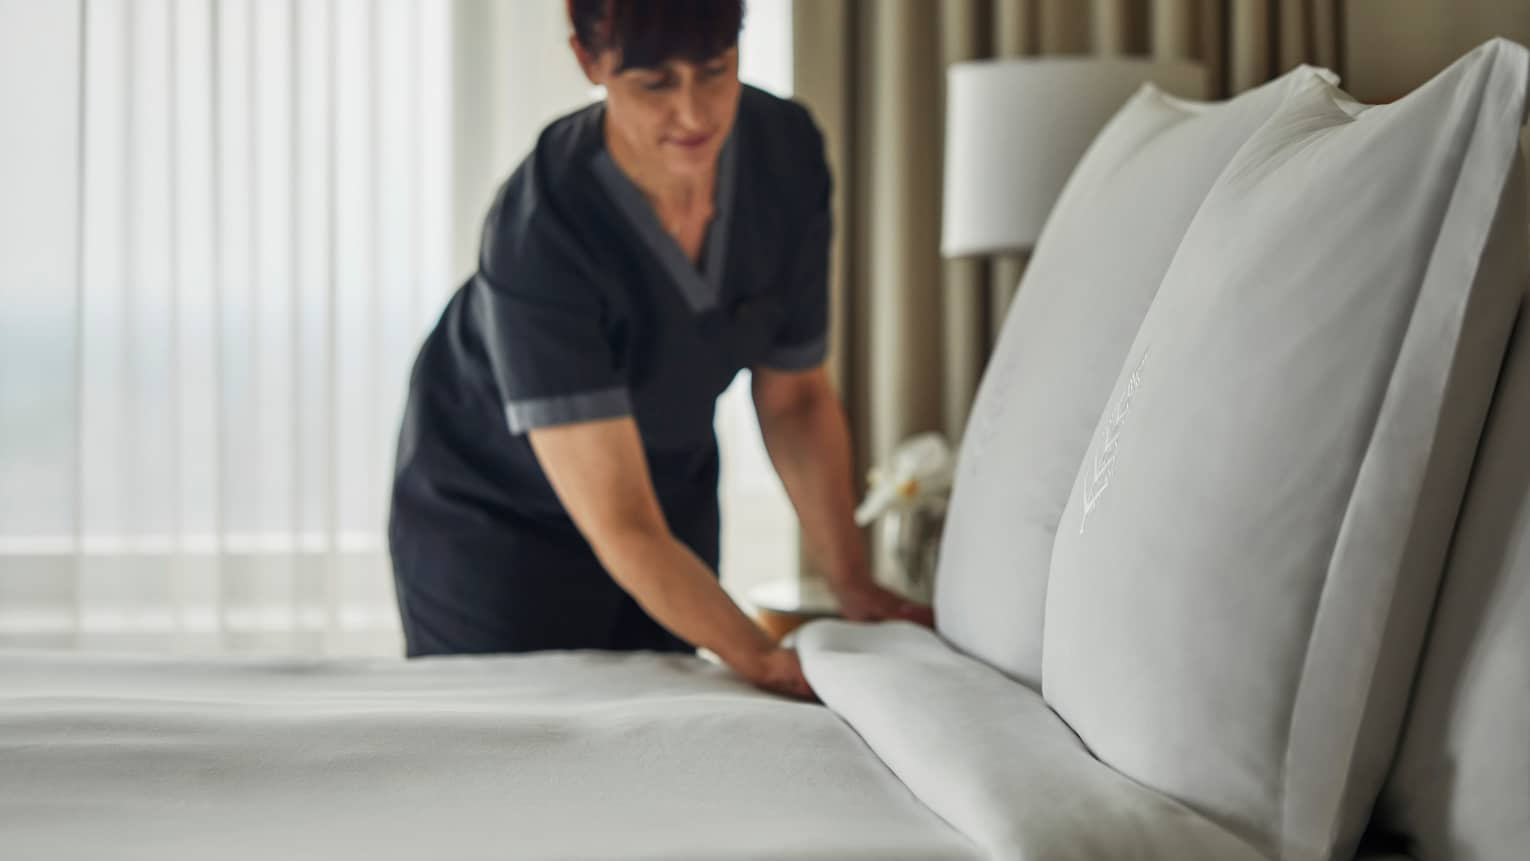 Hotel housekeeping staff makes bed, white linens and pillows